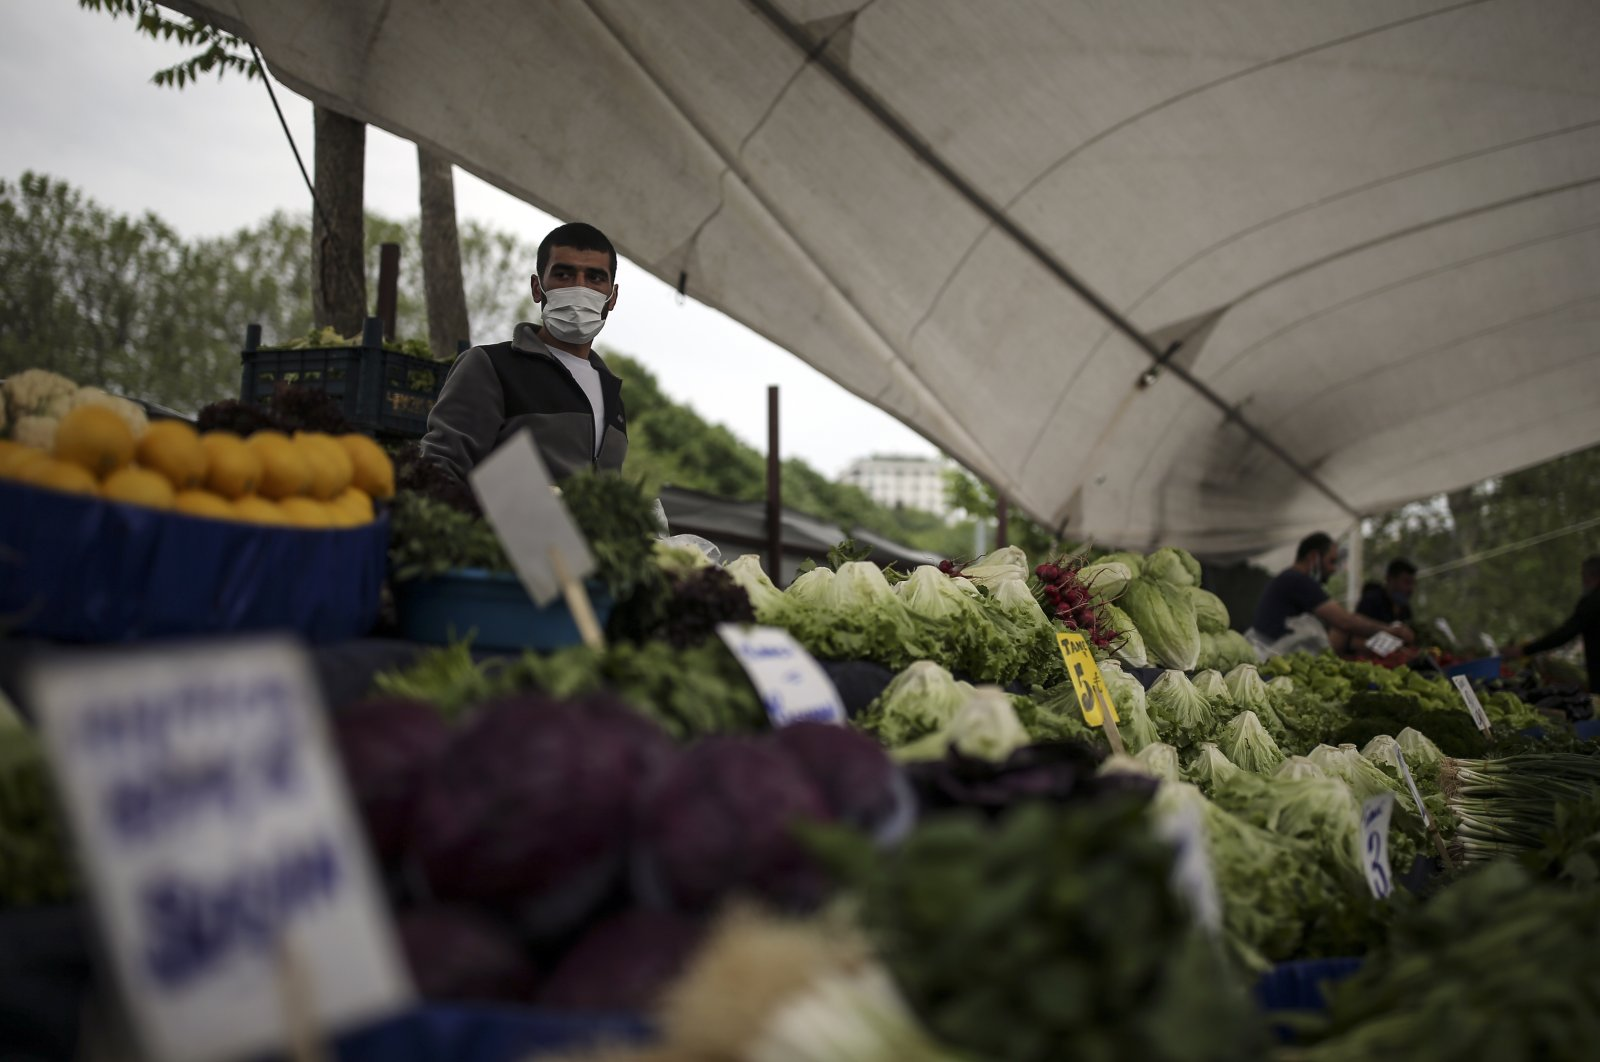 People shop in a market in Istanbul, Saturday, May 8, 2021, after they were allowed to open during the total lockdown. (AP Photo)